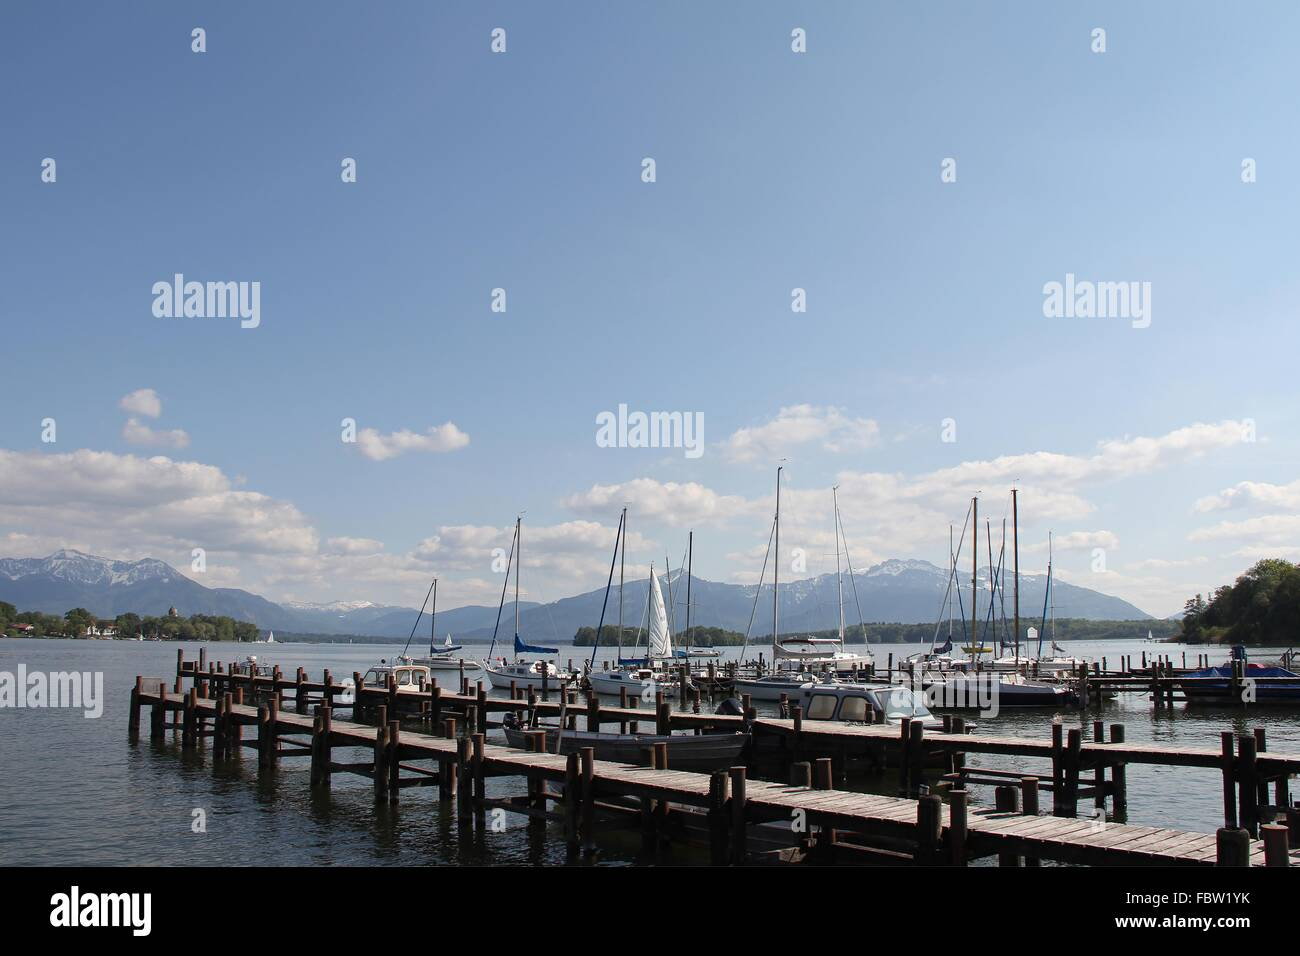 At the harbour of Gstadt - Stock Image